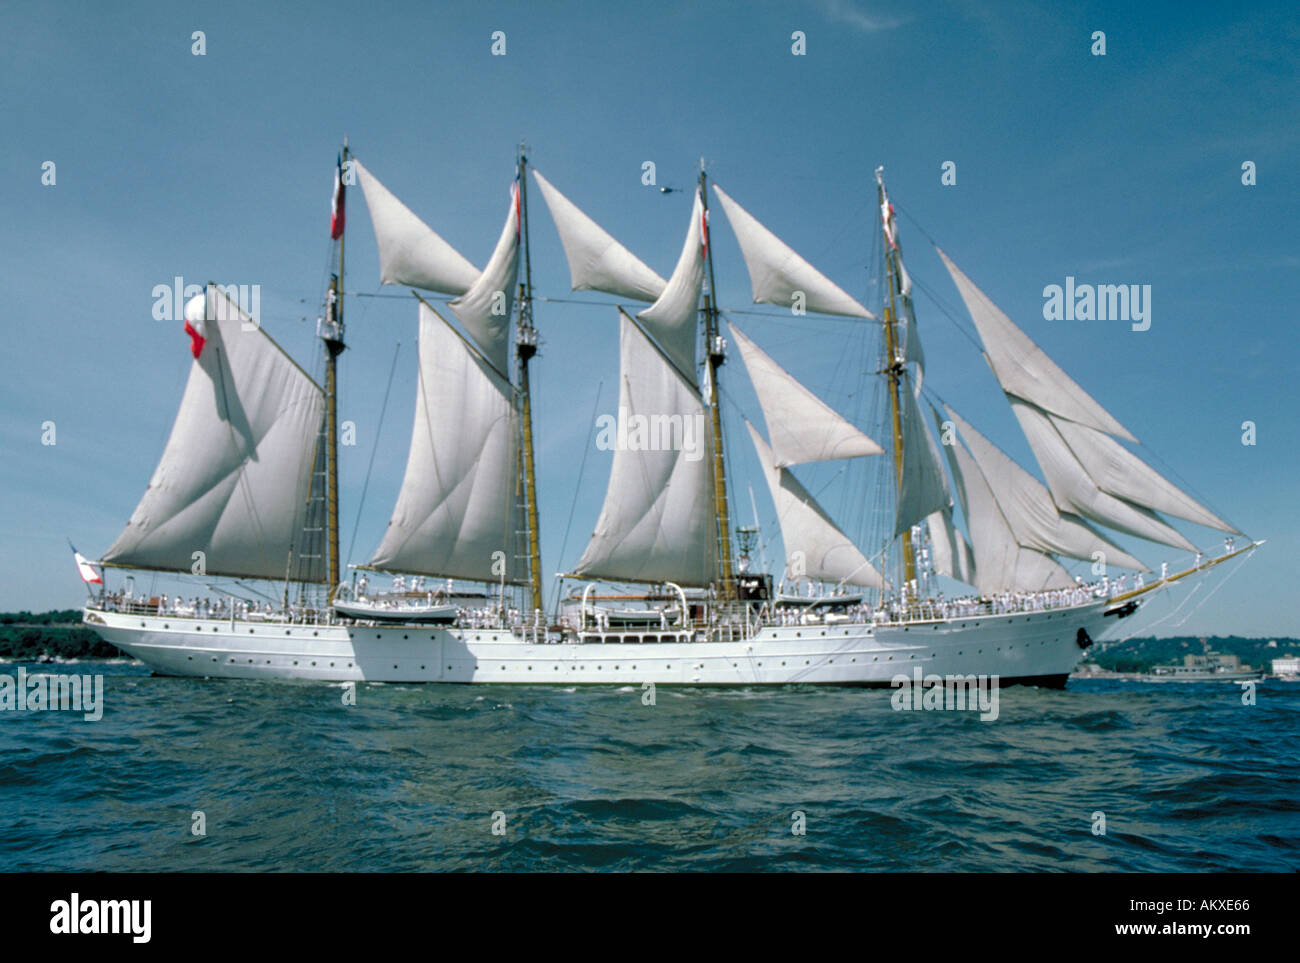 A white four masted barquentine ship at full sail at historic Tall Ships exhibition, Newport Rhode Island - Stock Image